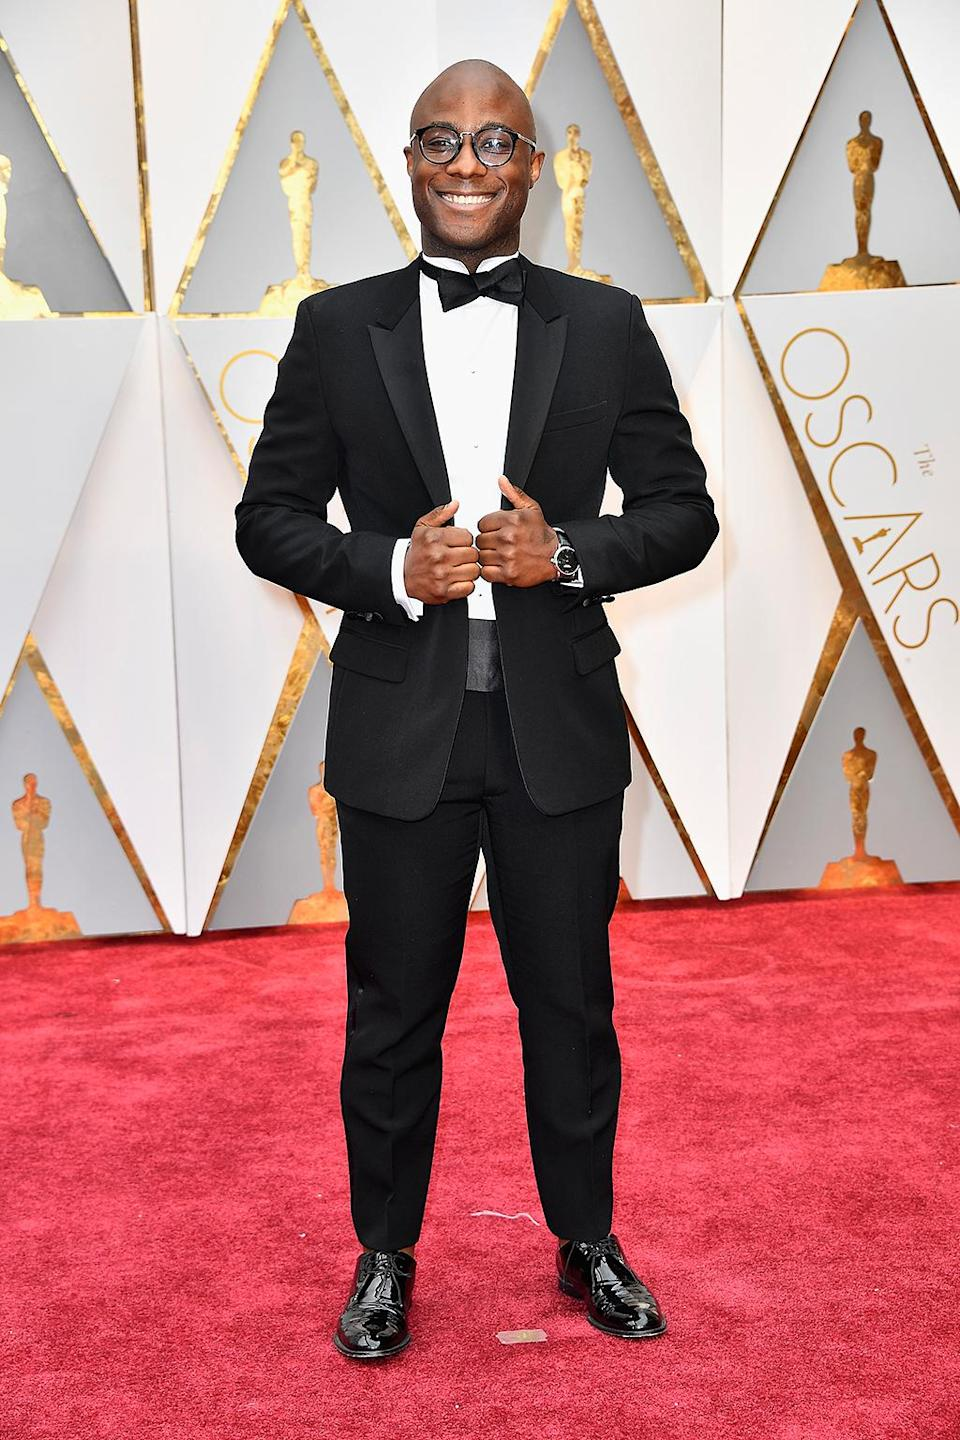 <p>Director Barry Jenkins attends the 89th Annual Academy Awards at Hollywood & Highland Center on February 26, 2017 in Hollywood, California. (Photo by Frazer Harrison/Getty Images) </p>